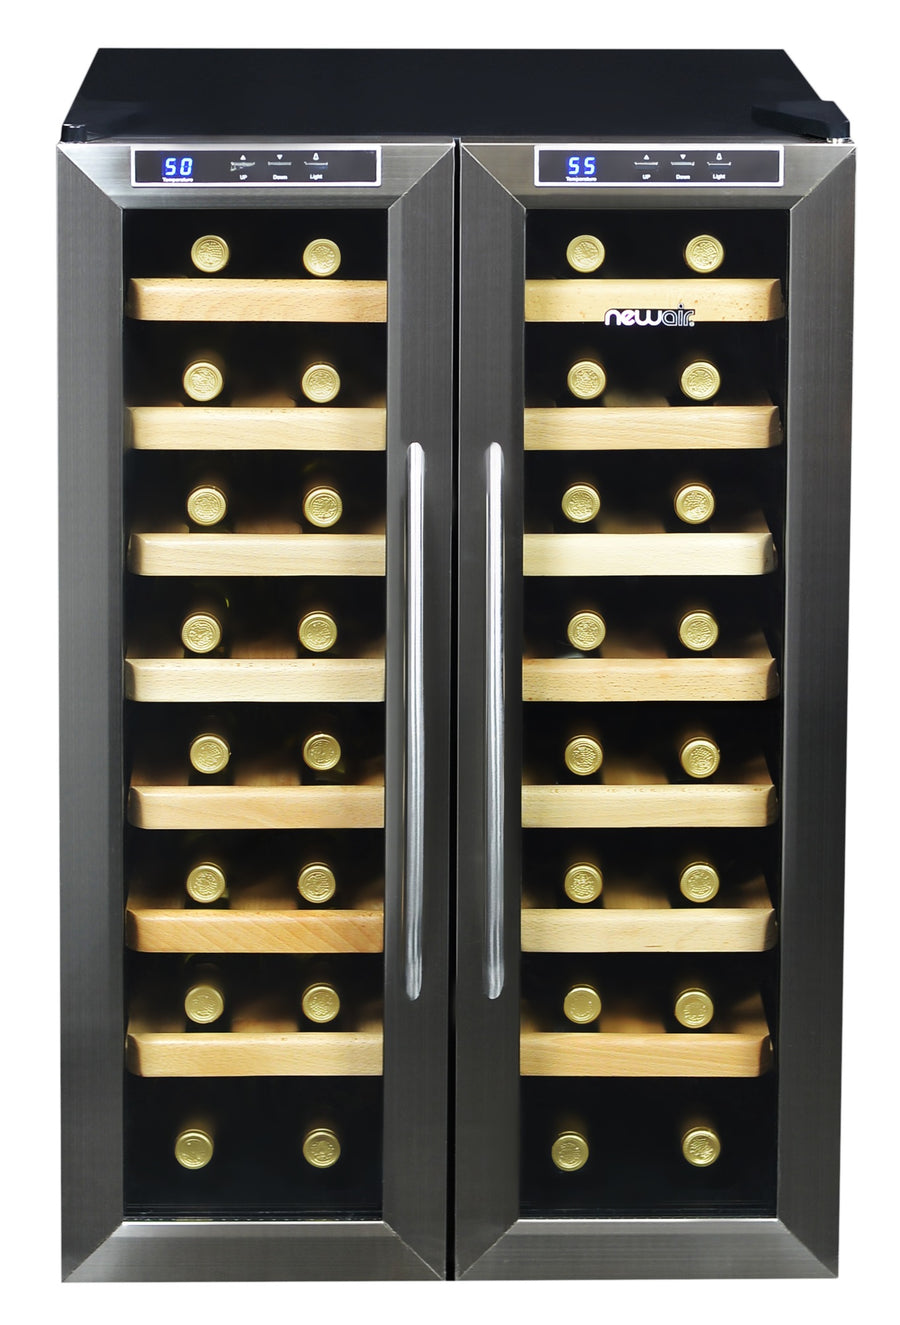 Newair Aw 321ed 32 Bottle Wine Fridge Stainless Steel Dual Zone